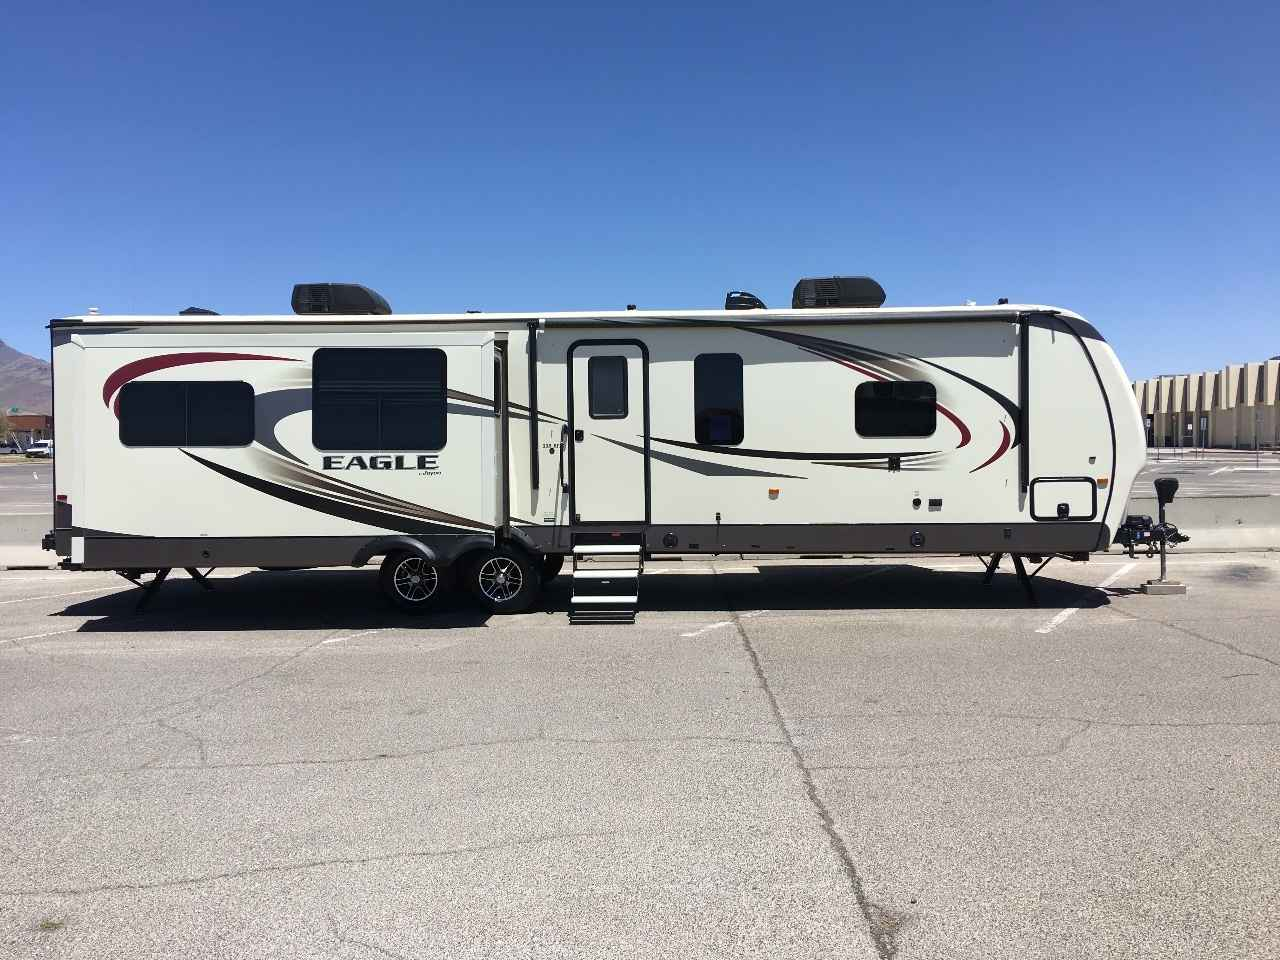 Unique 2008 Jayco Eagle Travel Trailer For Sale In Portage La